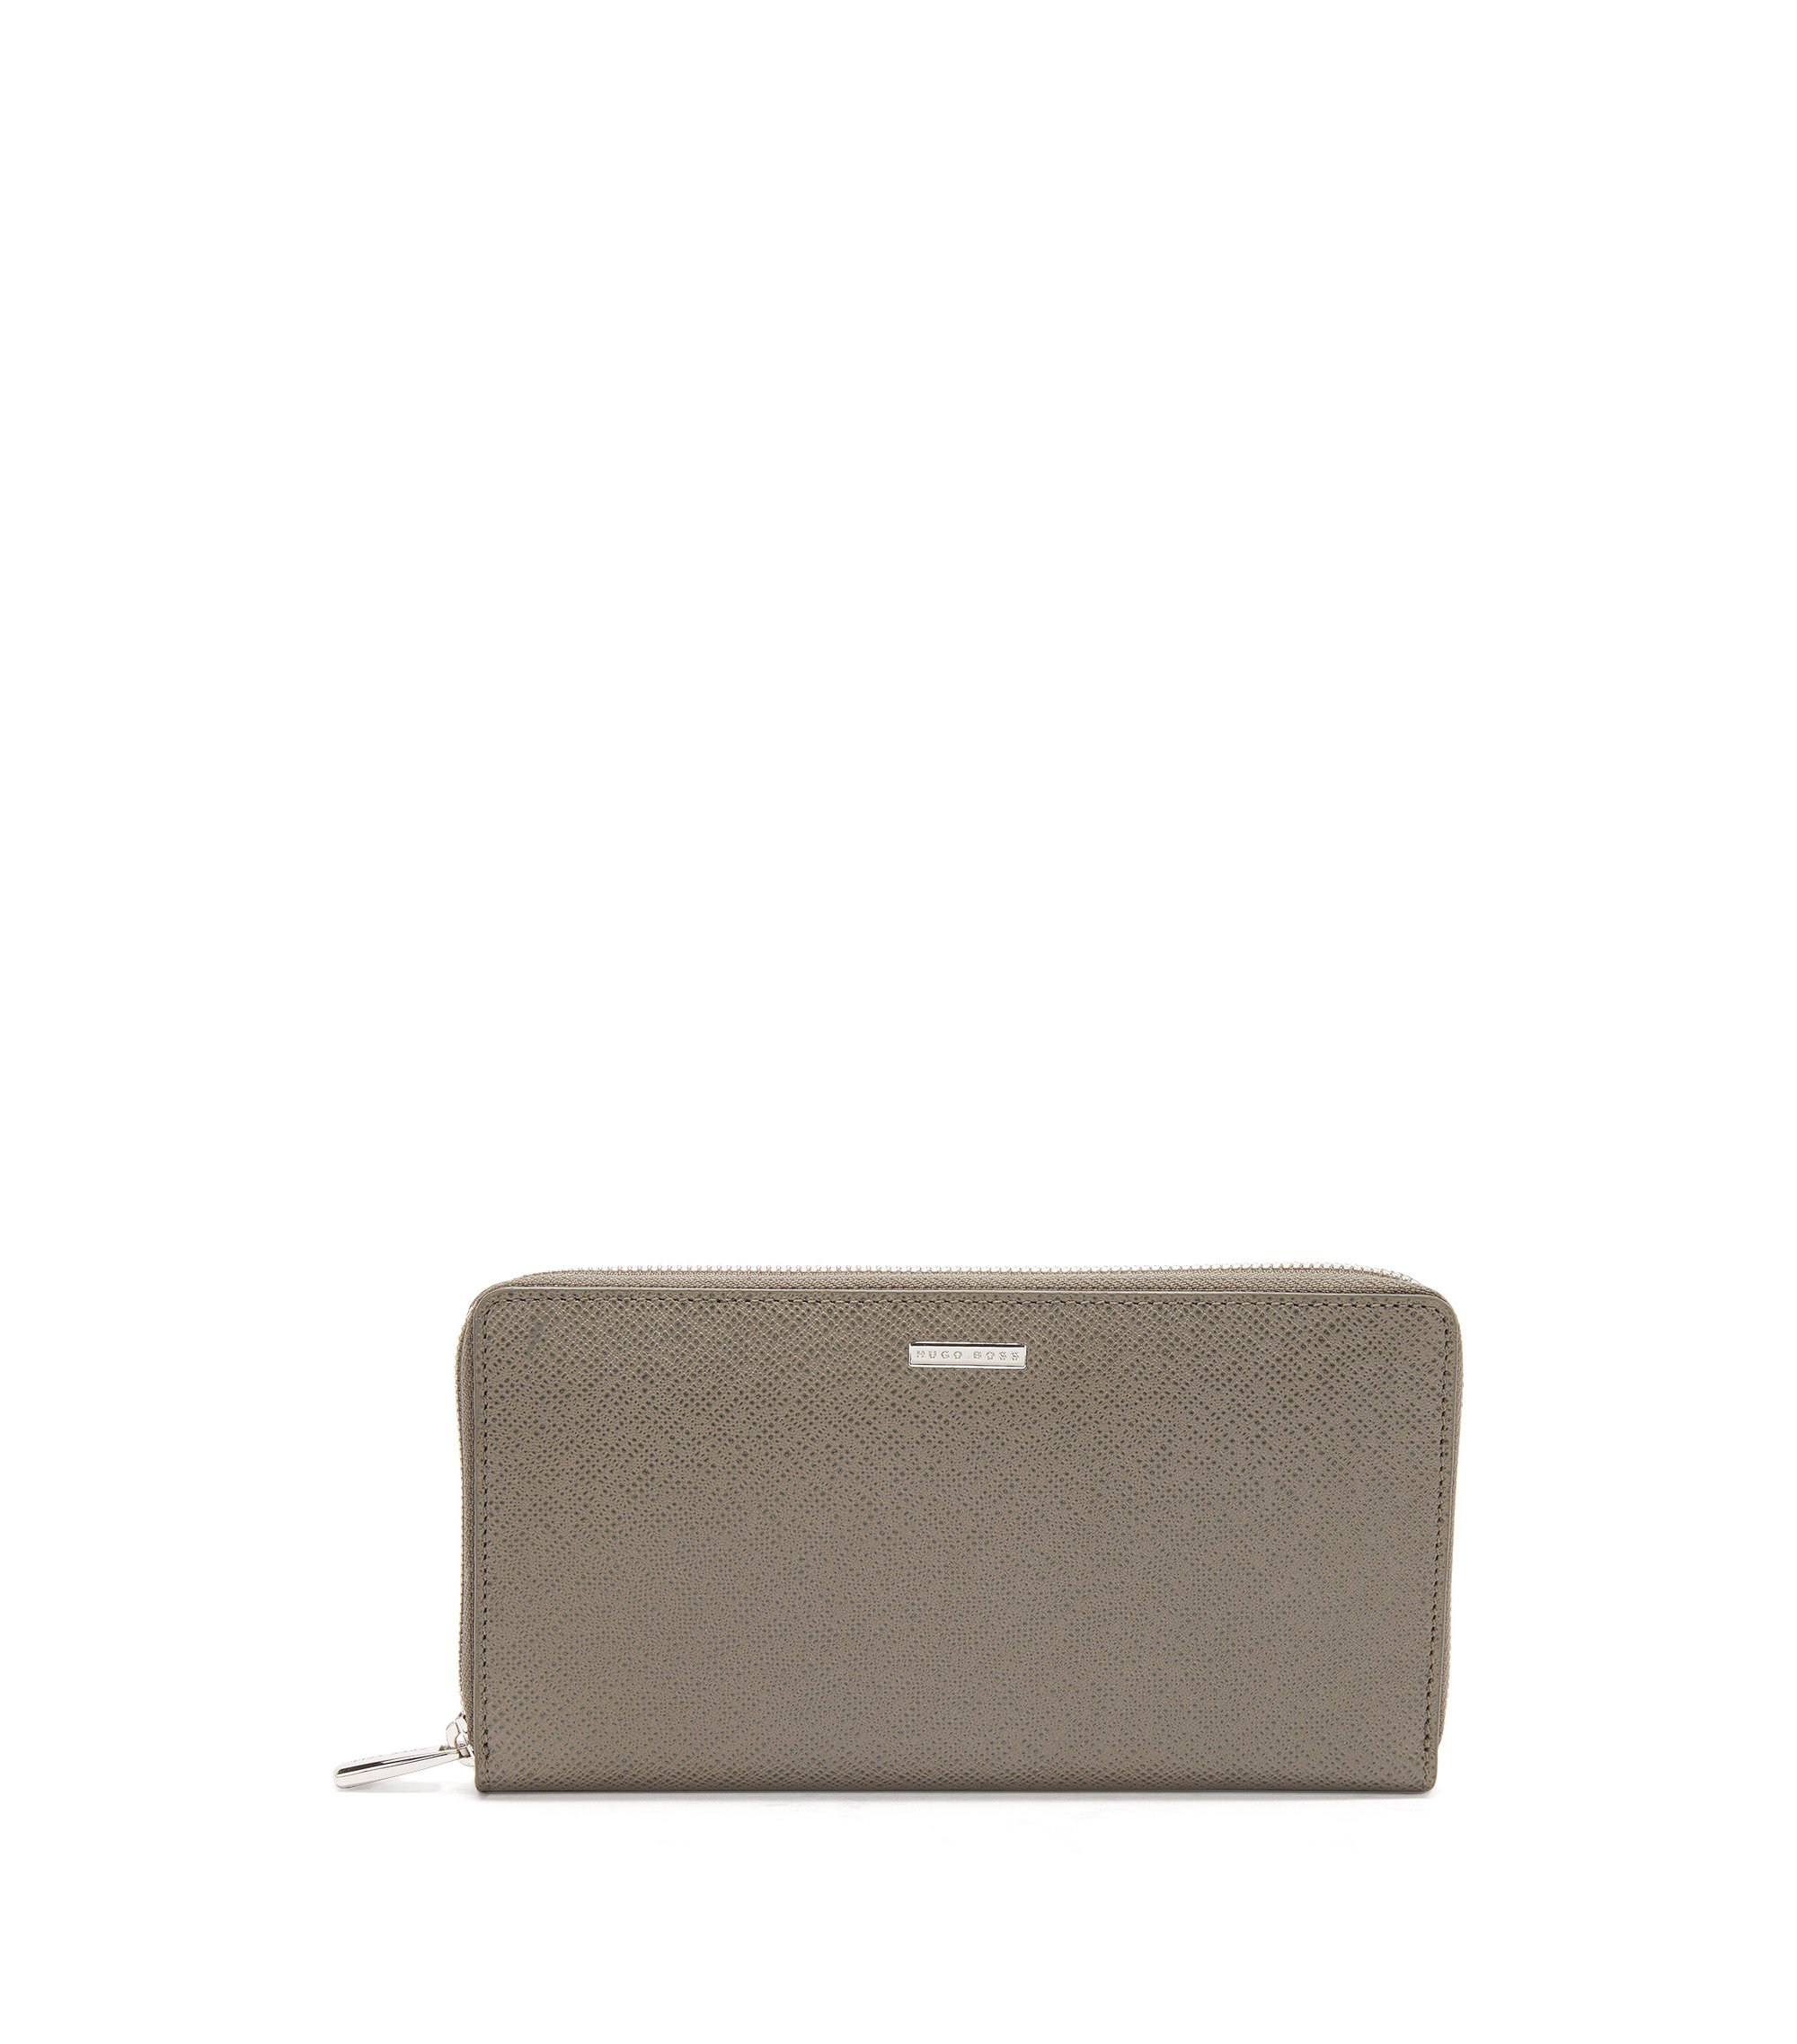 BOSS Signature Collection ziparound wallet in palmellato leather, Dark Grey